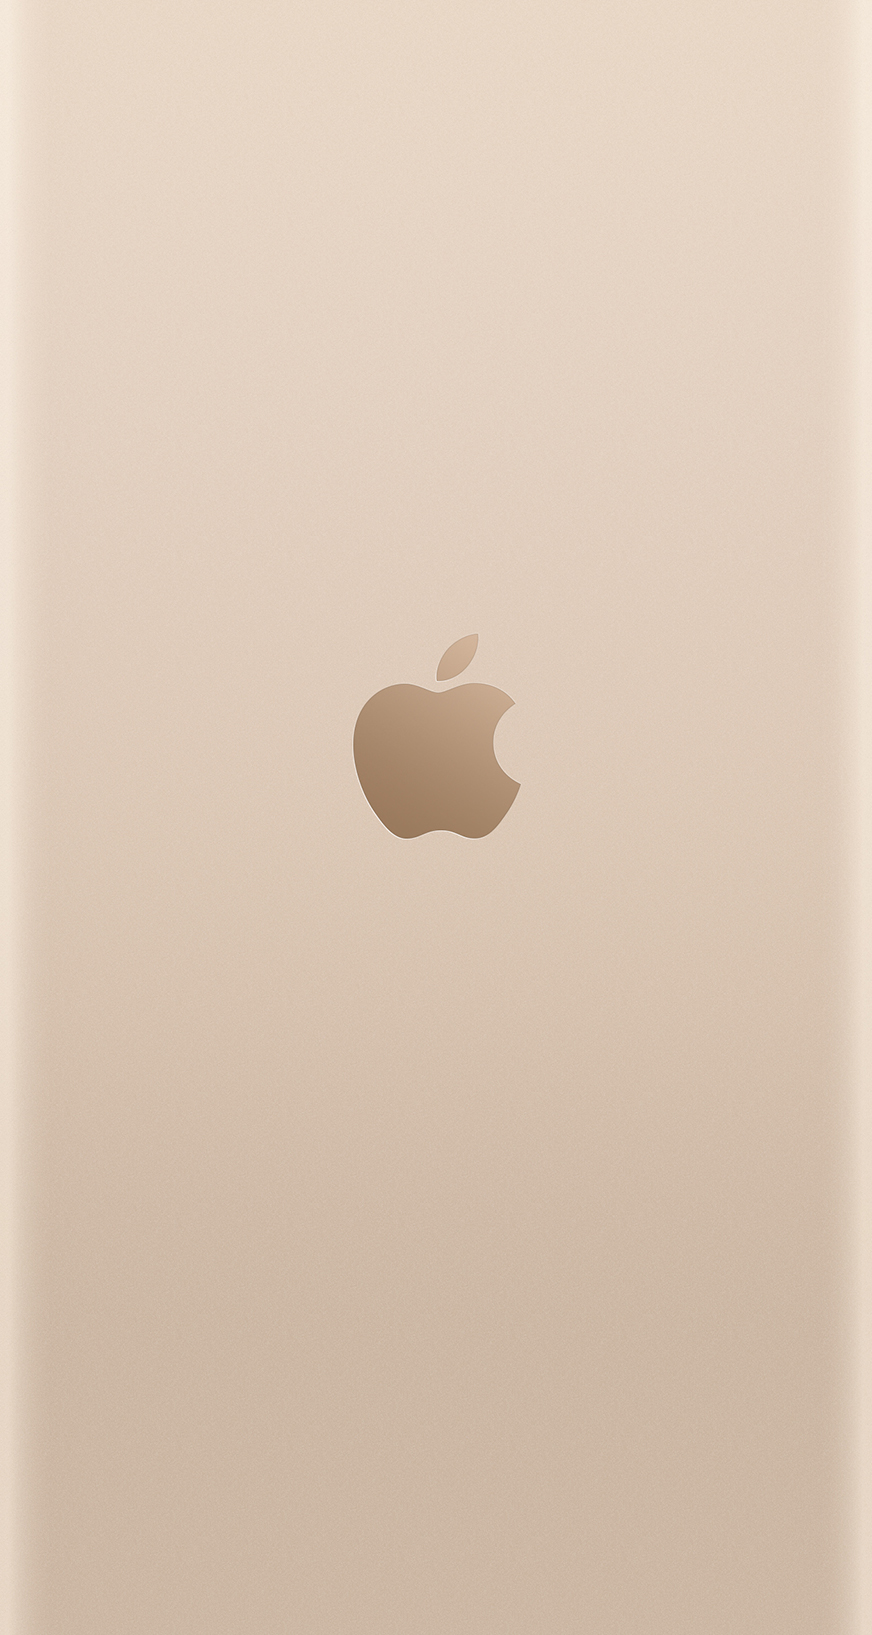 Unduh 400 Wallpaper Apple Gold Logo  Terbaik